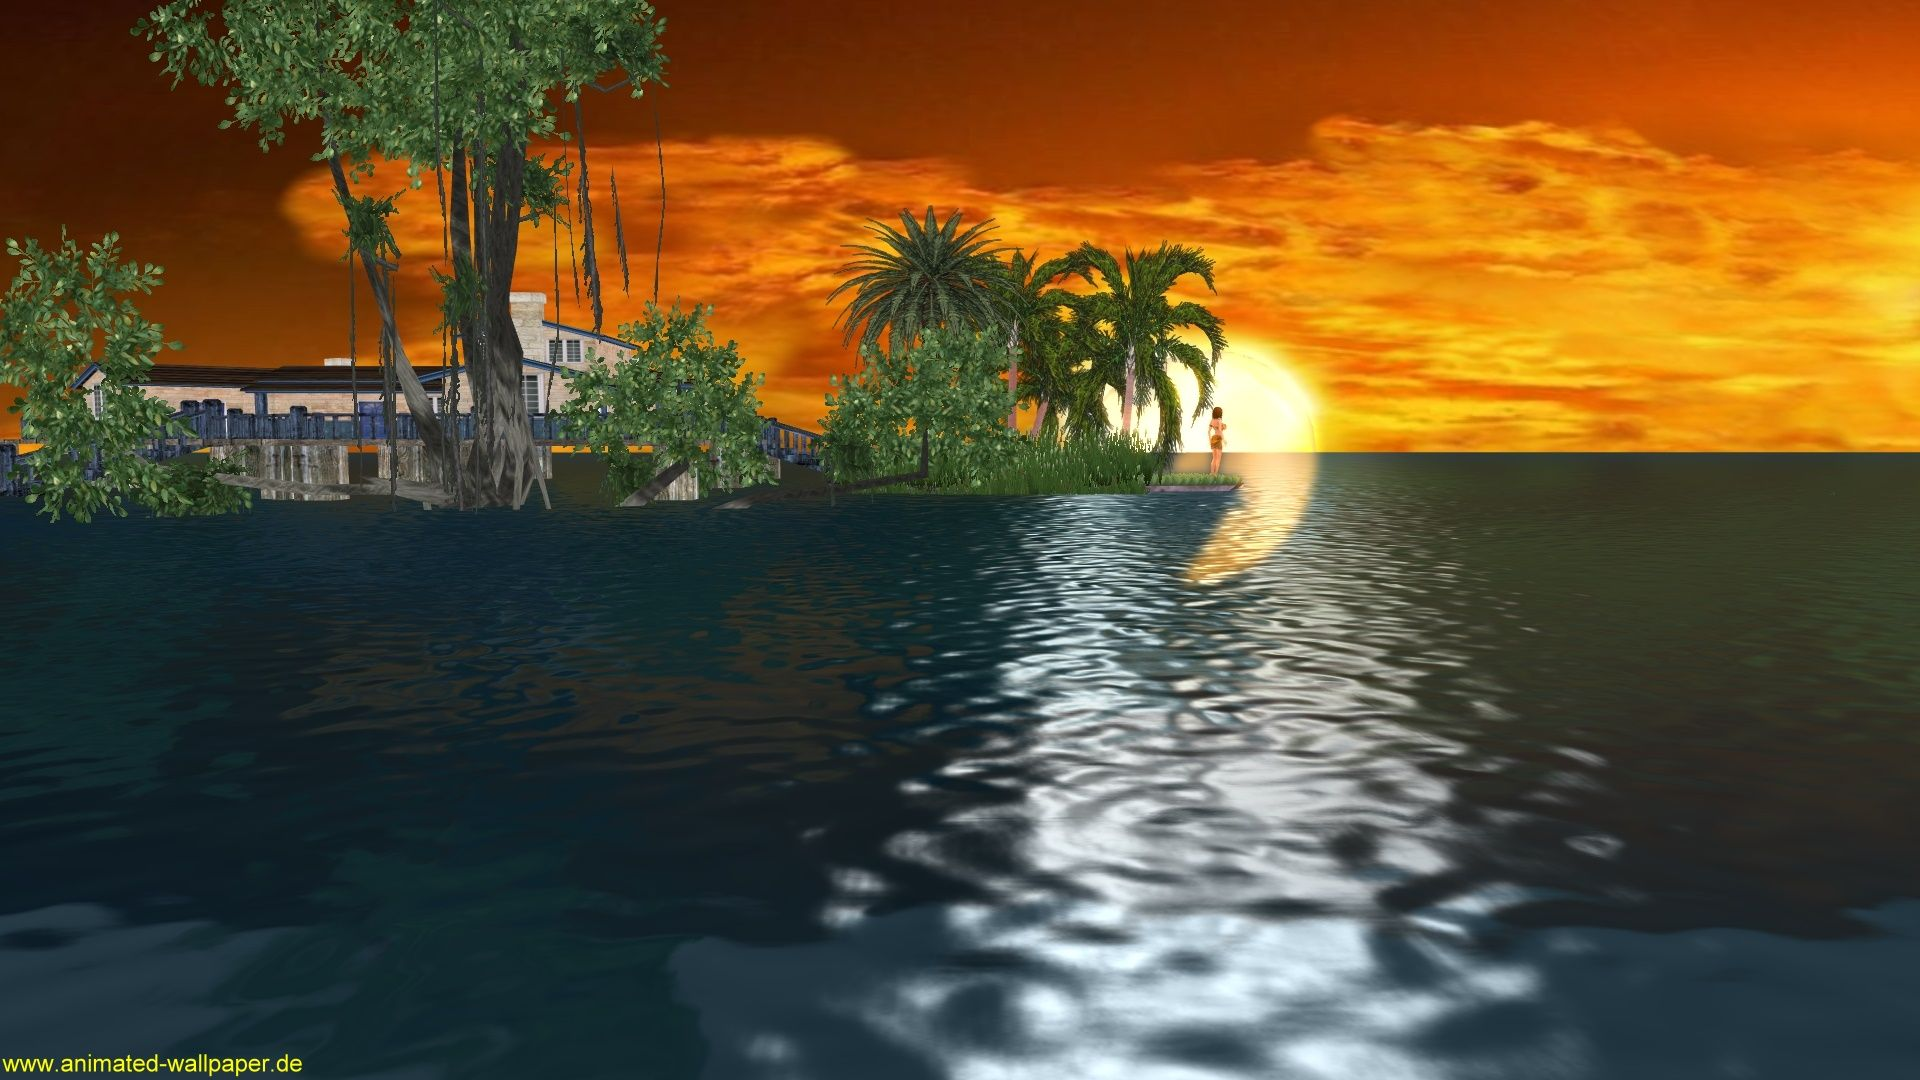 Download free 3d animated desktop wallpaper 3d animation wallpaper free download vista sunset desktop wallpaper